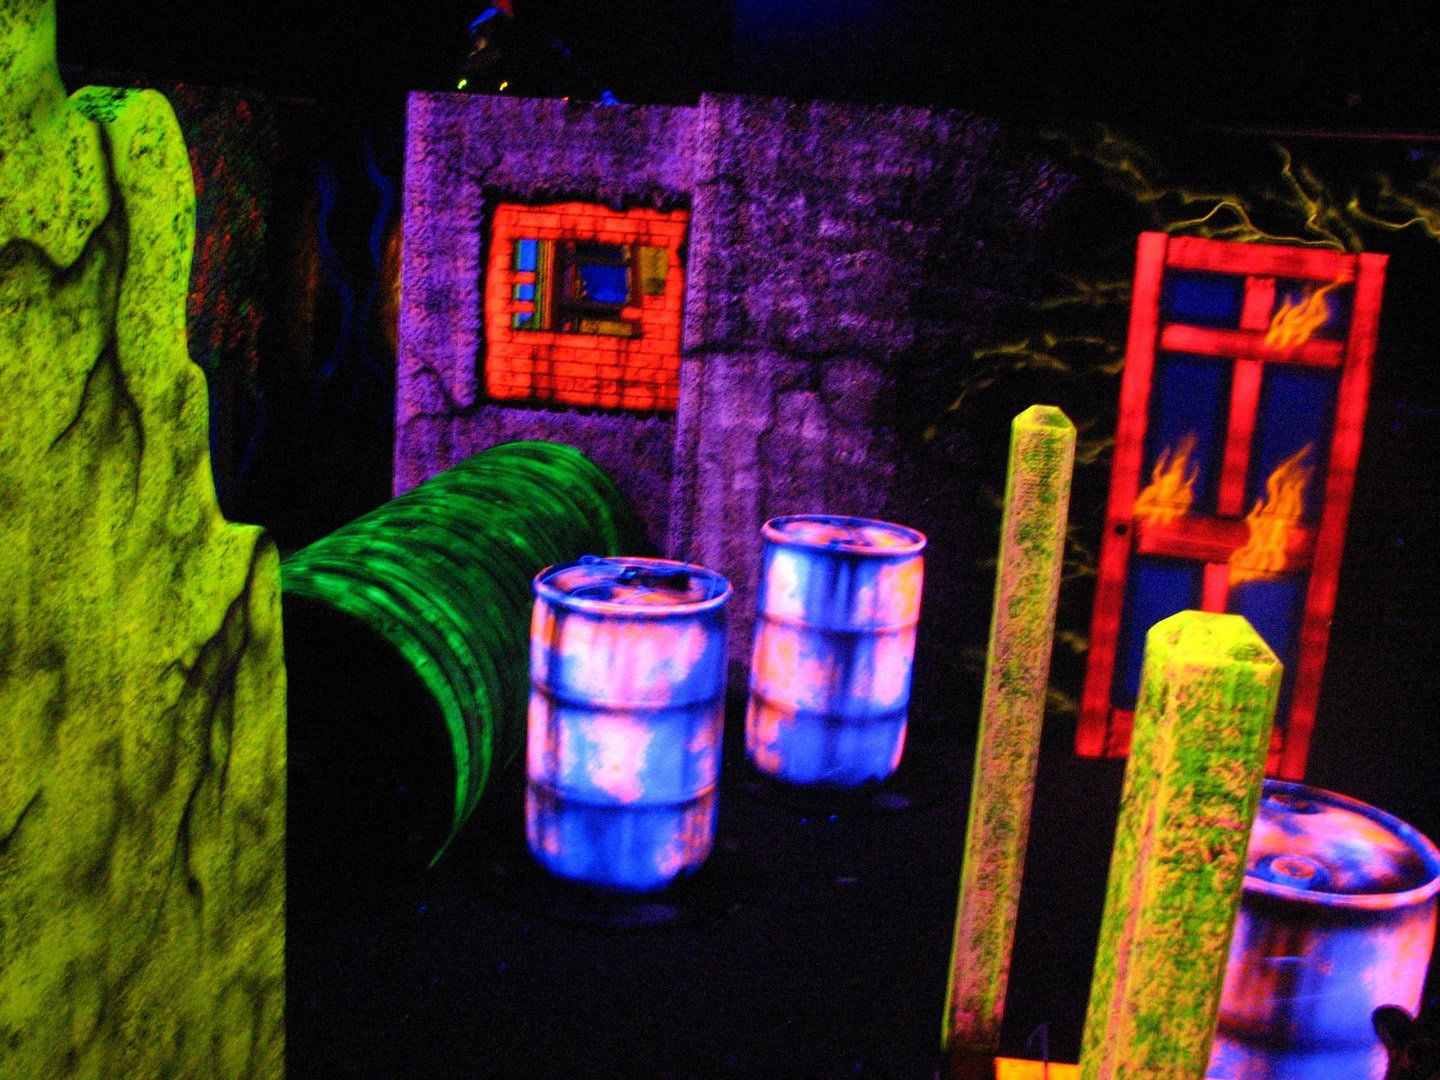 Black Light Attractions Does Installations For Entertainment Centers But You Ll Probabl Blacklight Halloween Haunted House Decorations Halloween Haunted Houses